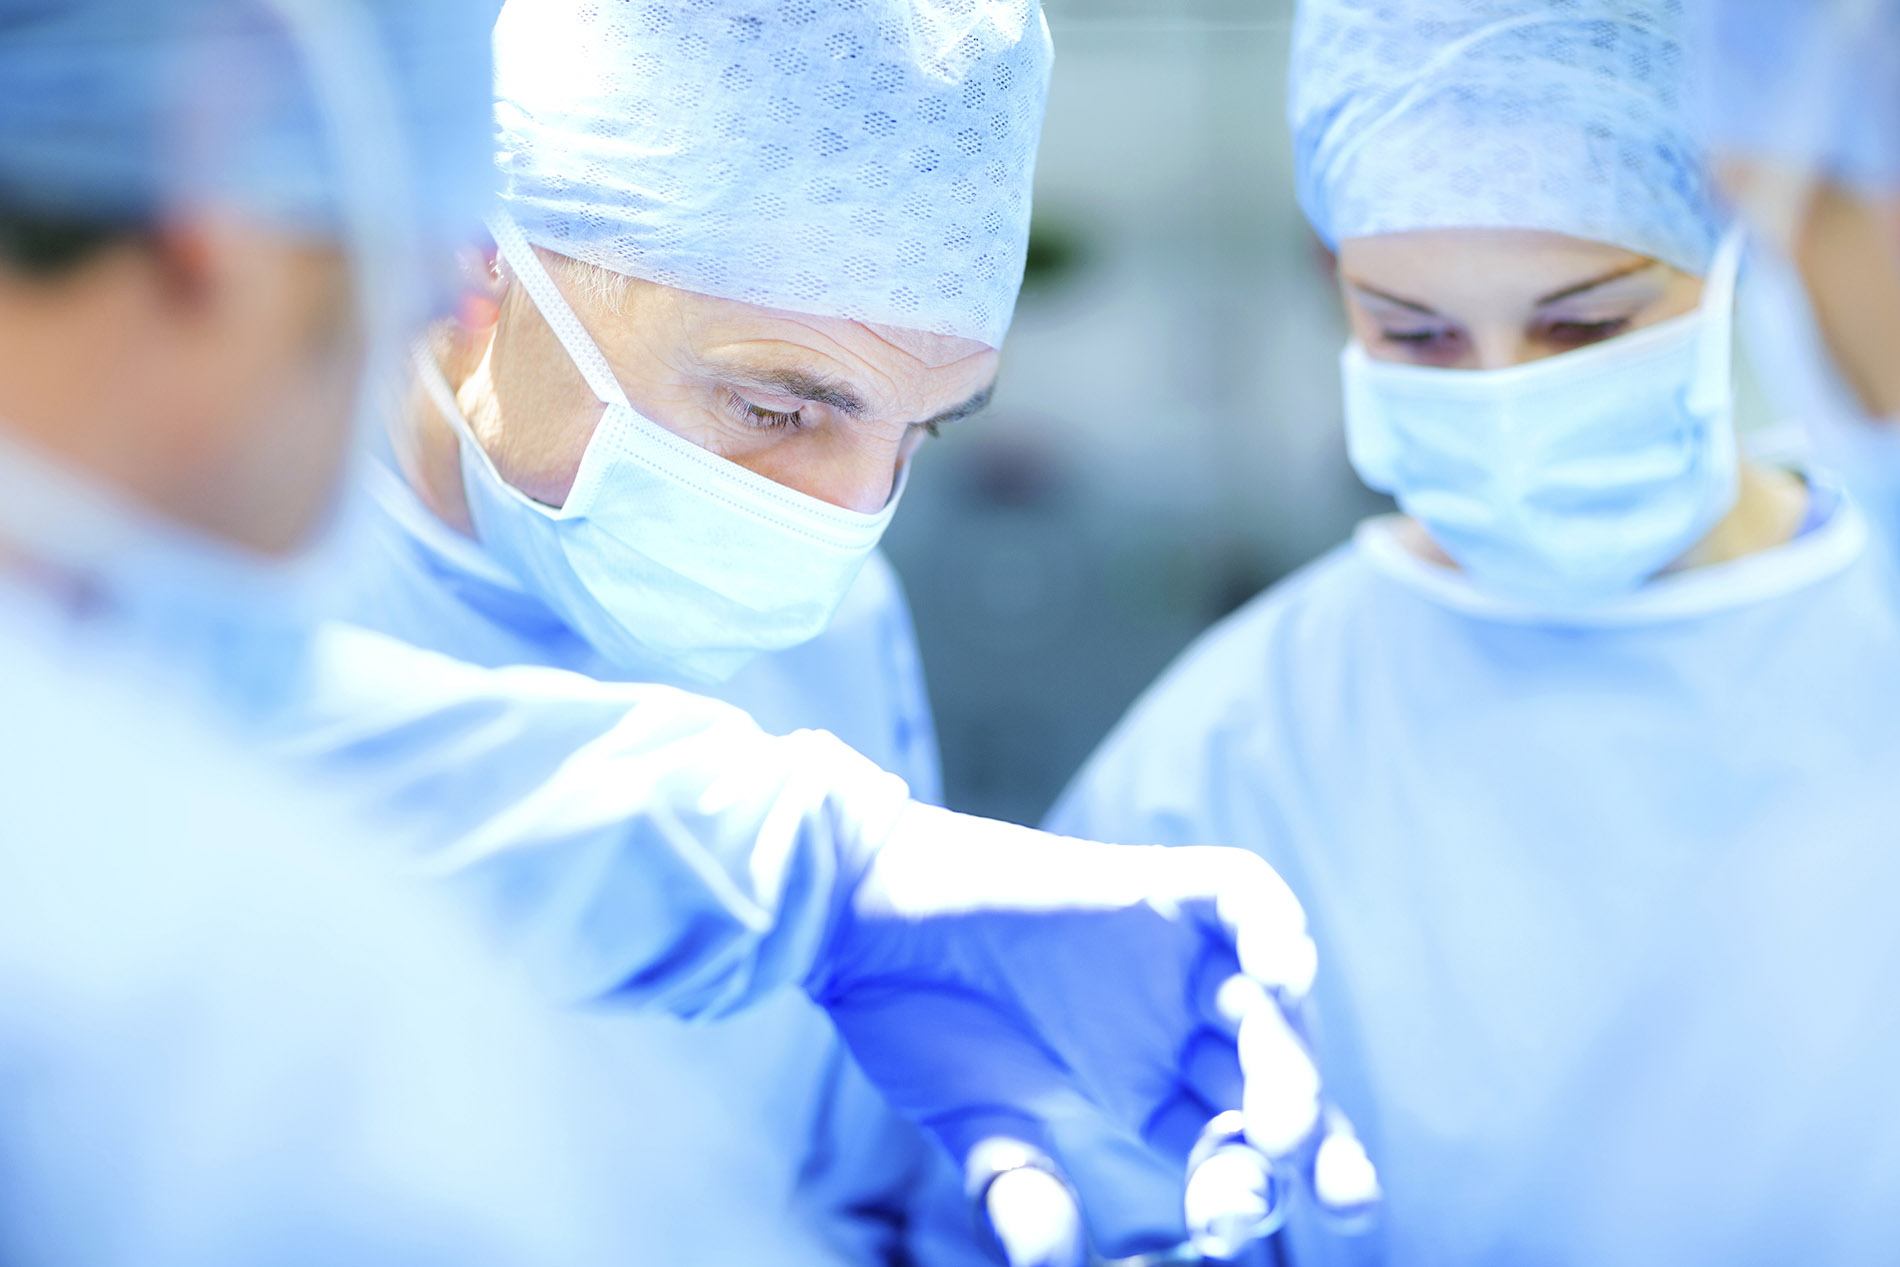 Team Of Surgeons Performing Surgery In Operating Room